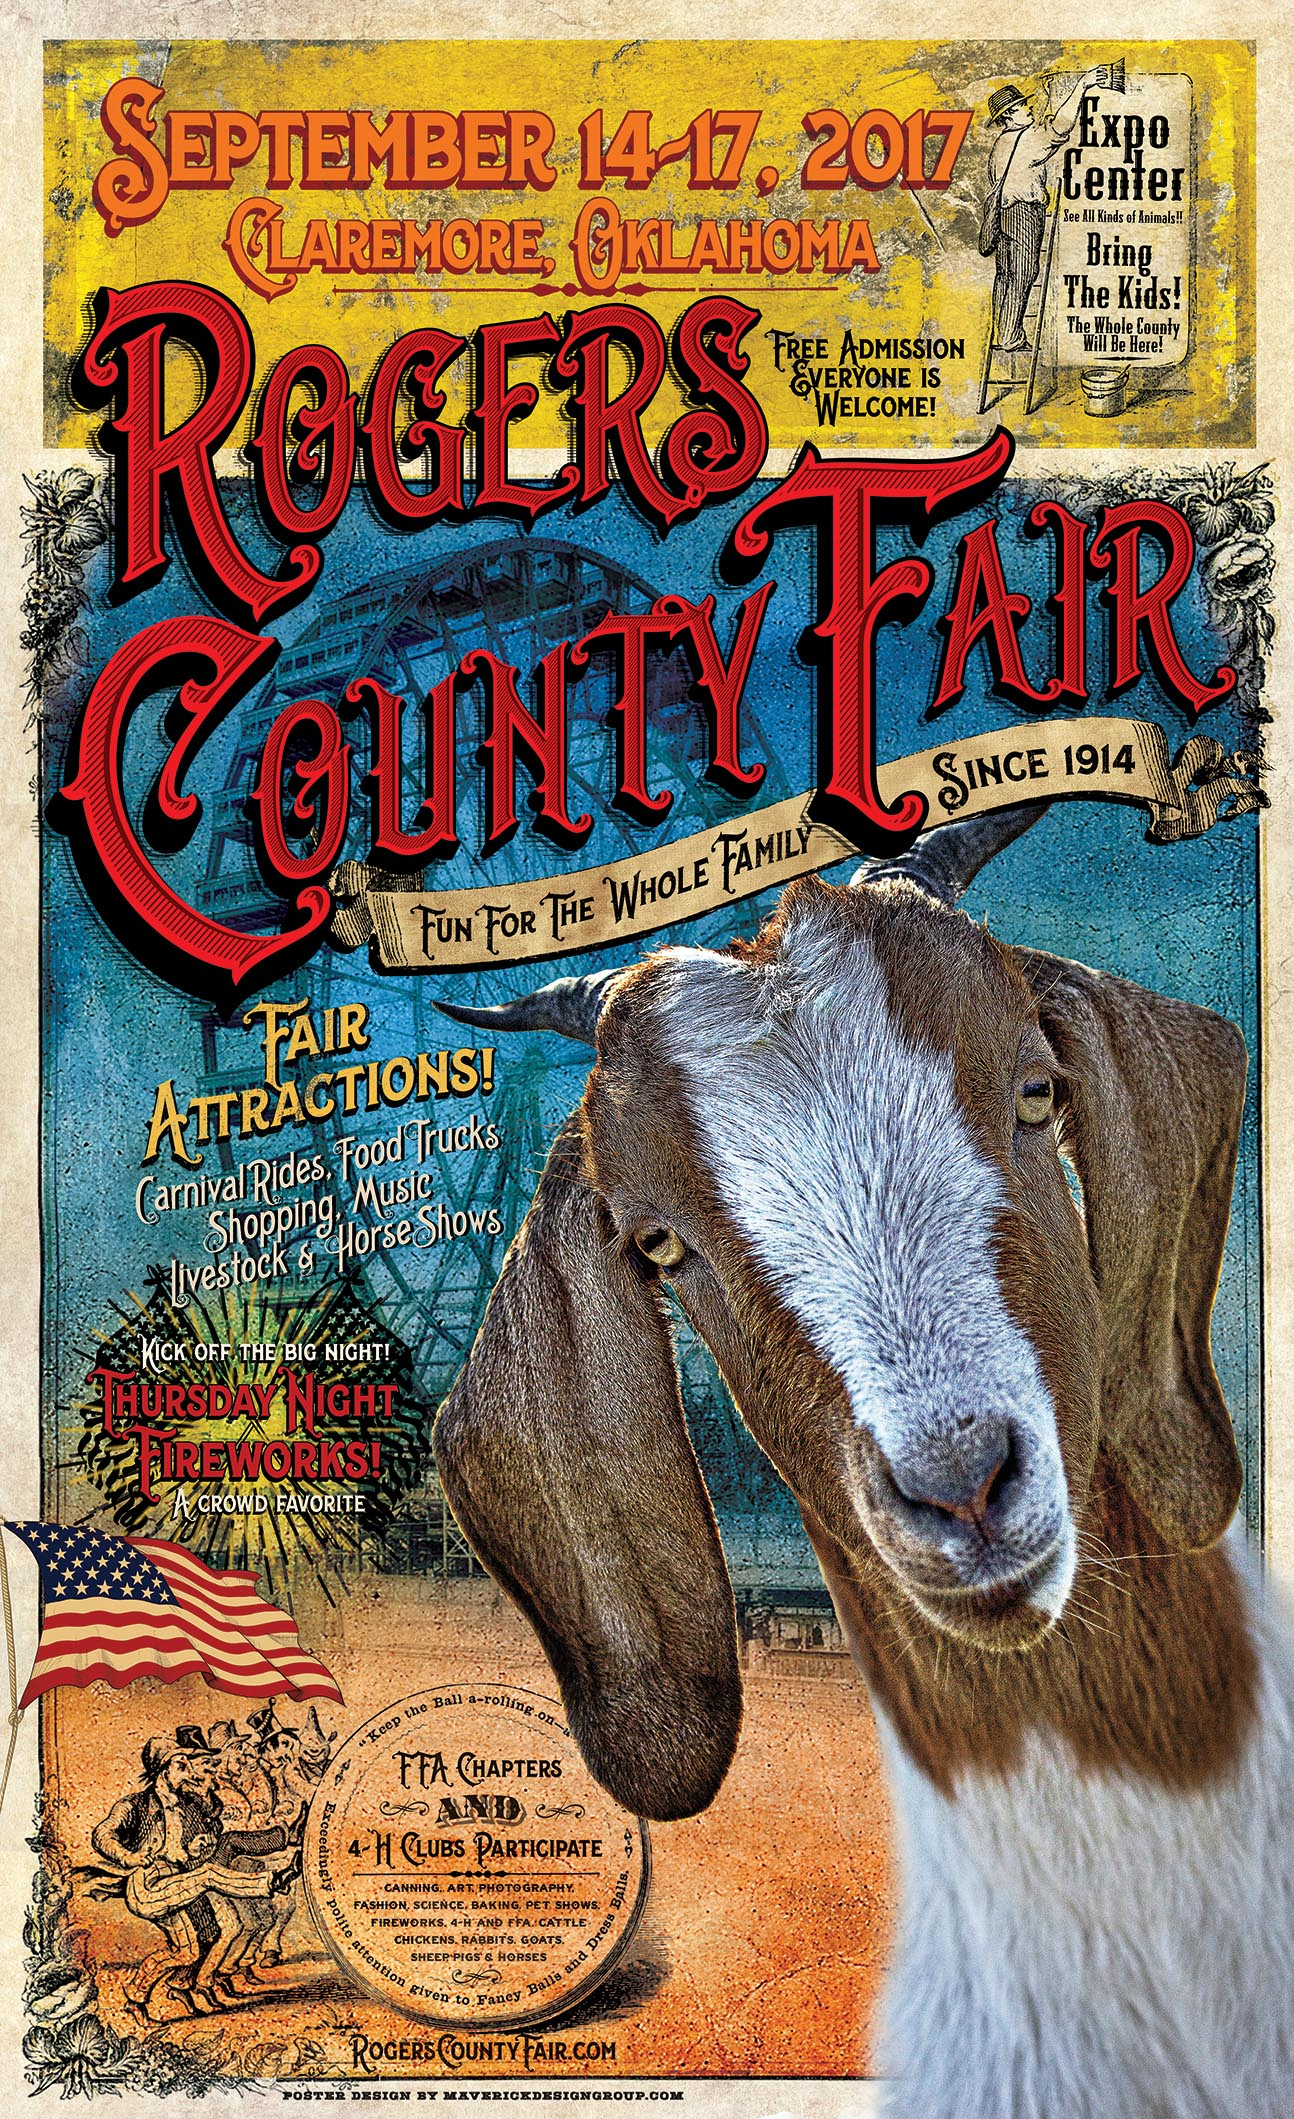 2017 Roger's County Fair Poster